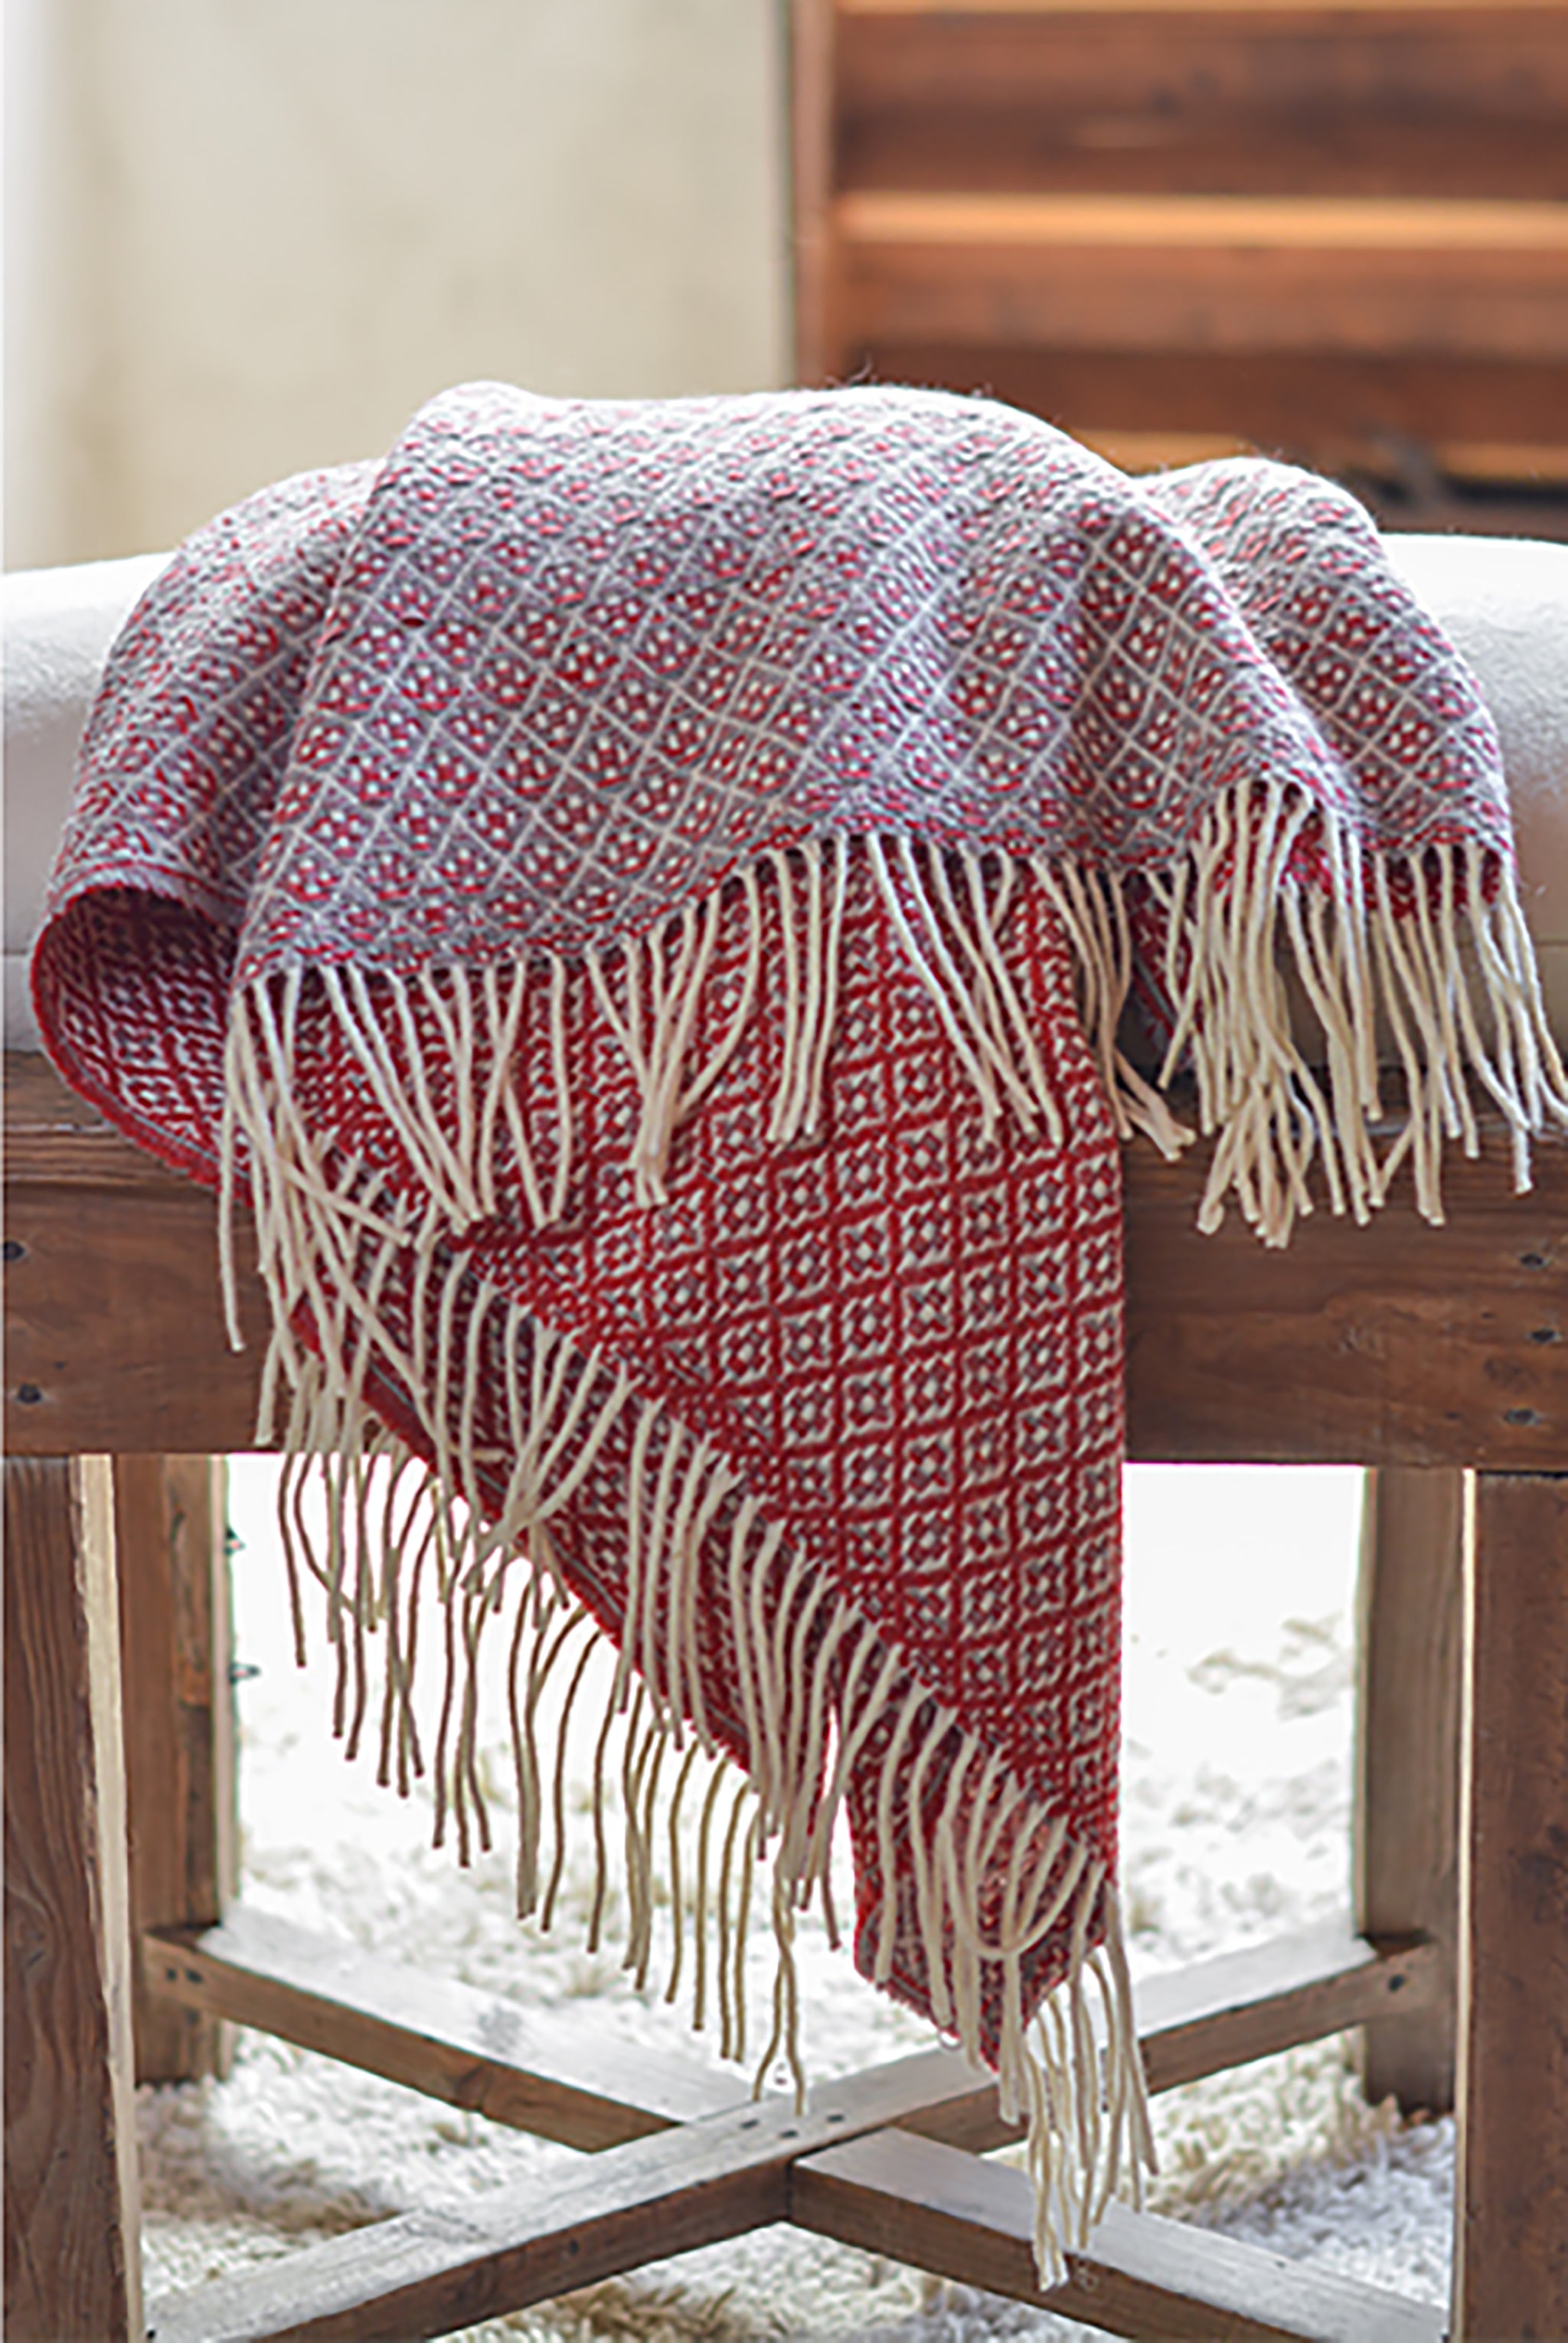 Red and grey Merino throw with flower weave pattern folded over a side table